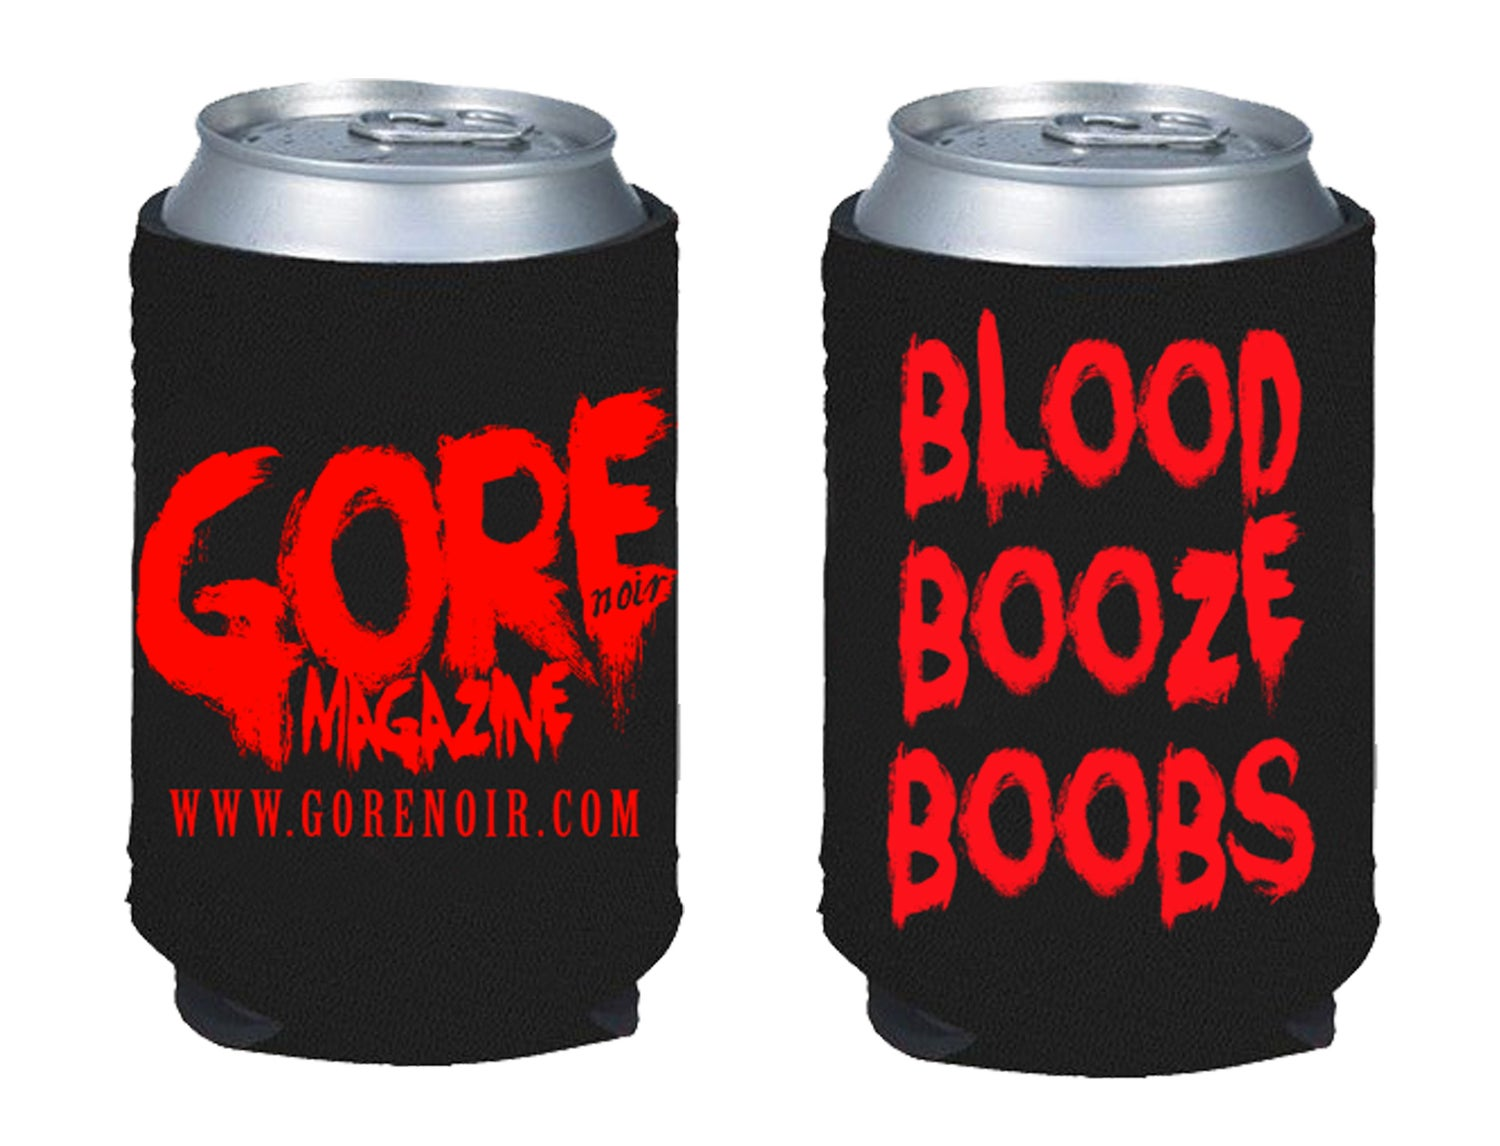 Image of Blood Booze Boobs Koozie (presale)